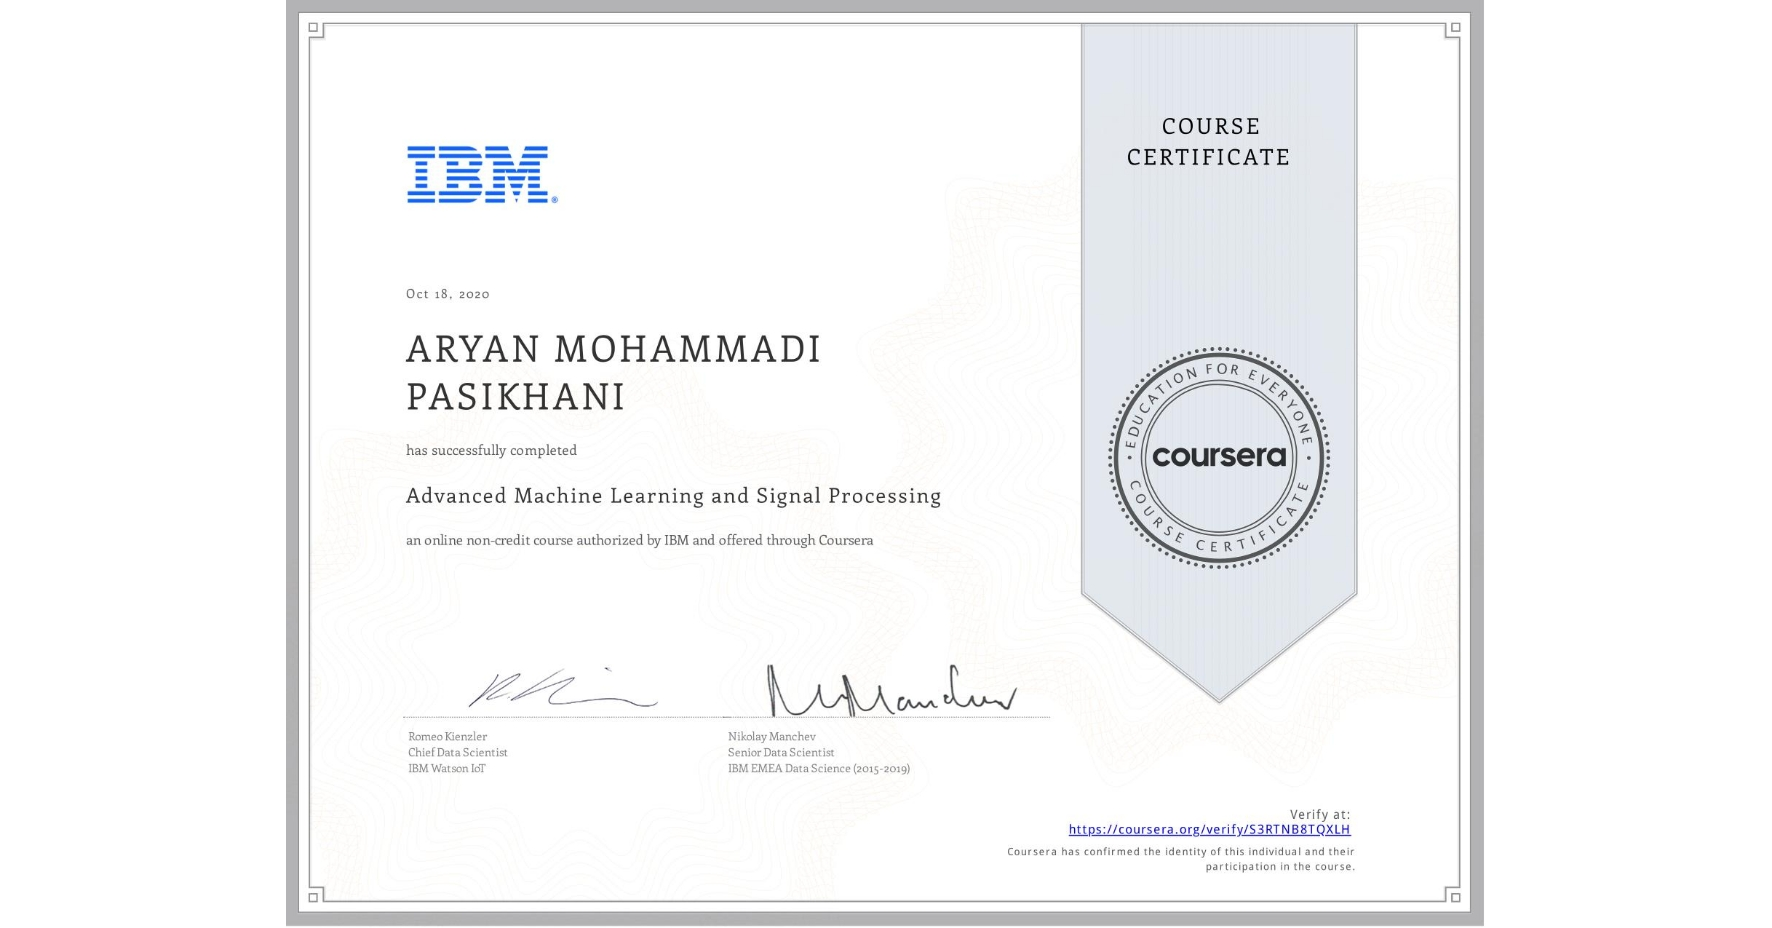 View certificate for ARYAN MOHAMMADI PASIKHANI, Advanced Machine Learning and Signal Processing, an online non-credit course authorized by IBM and offered through Coursera